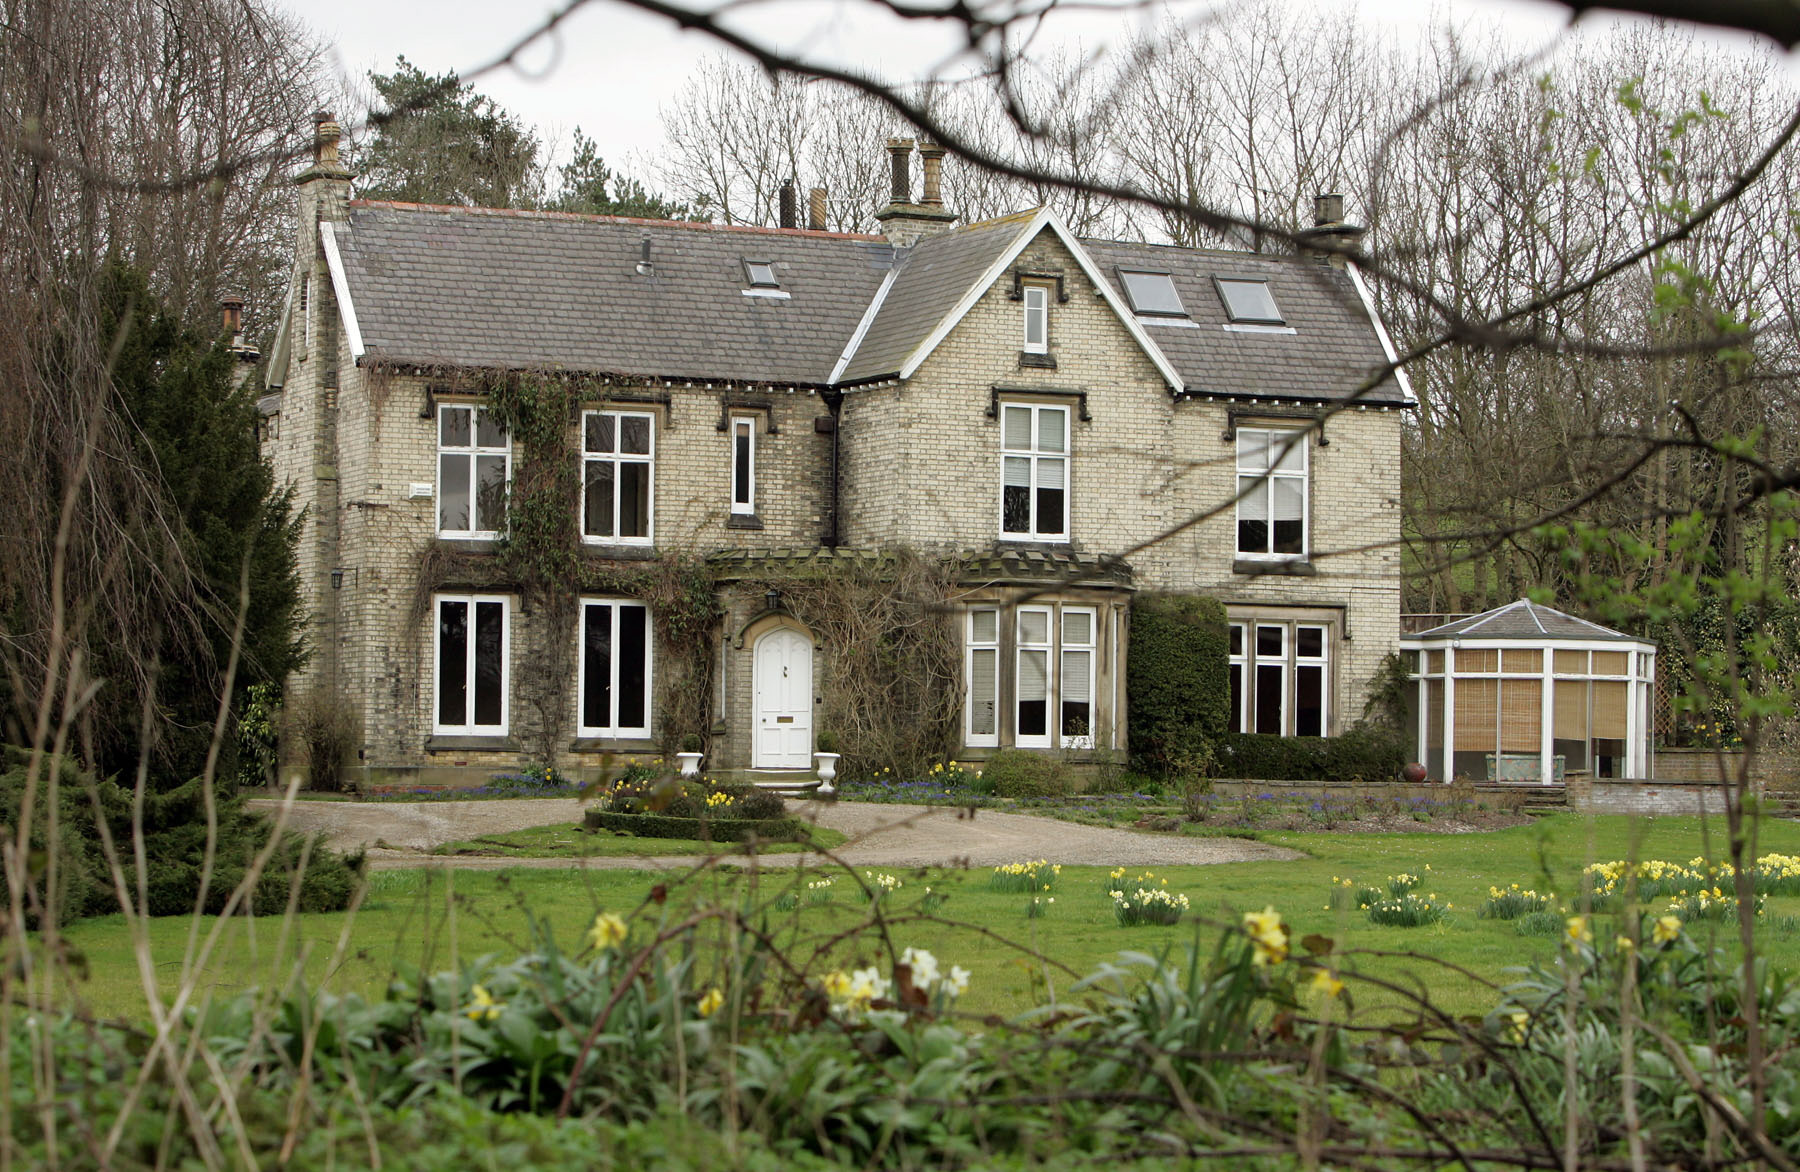 Croft House, which could be demolished to make way for six detached houses